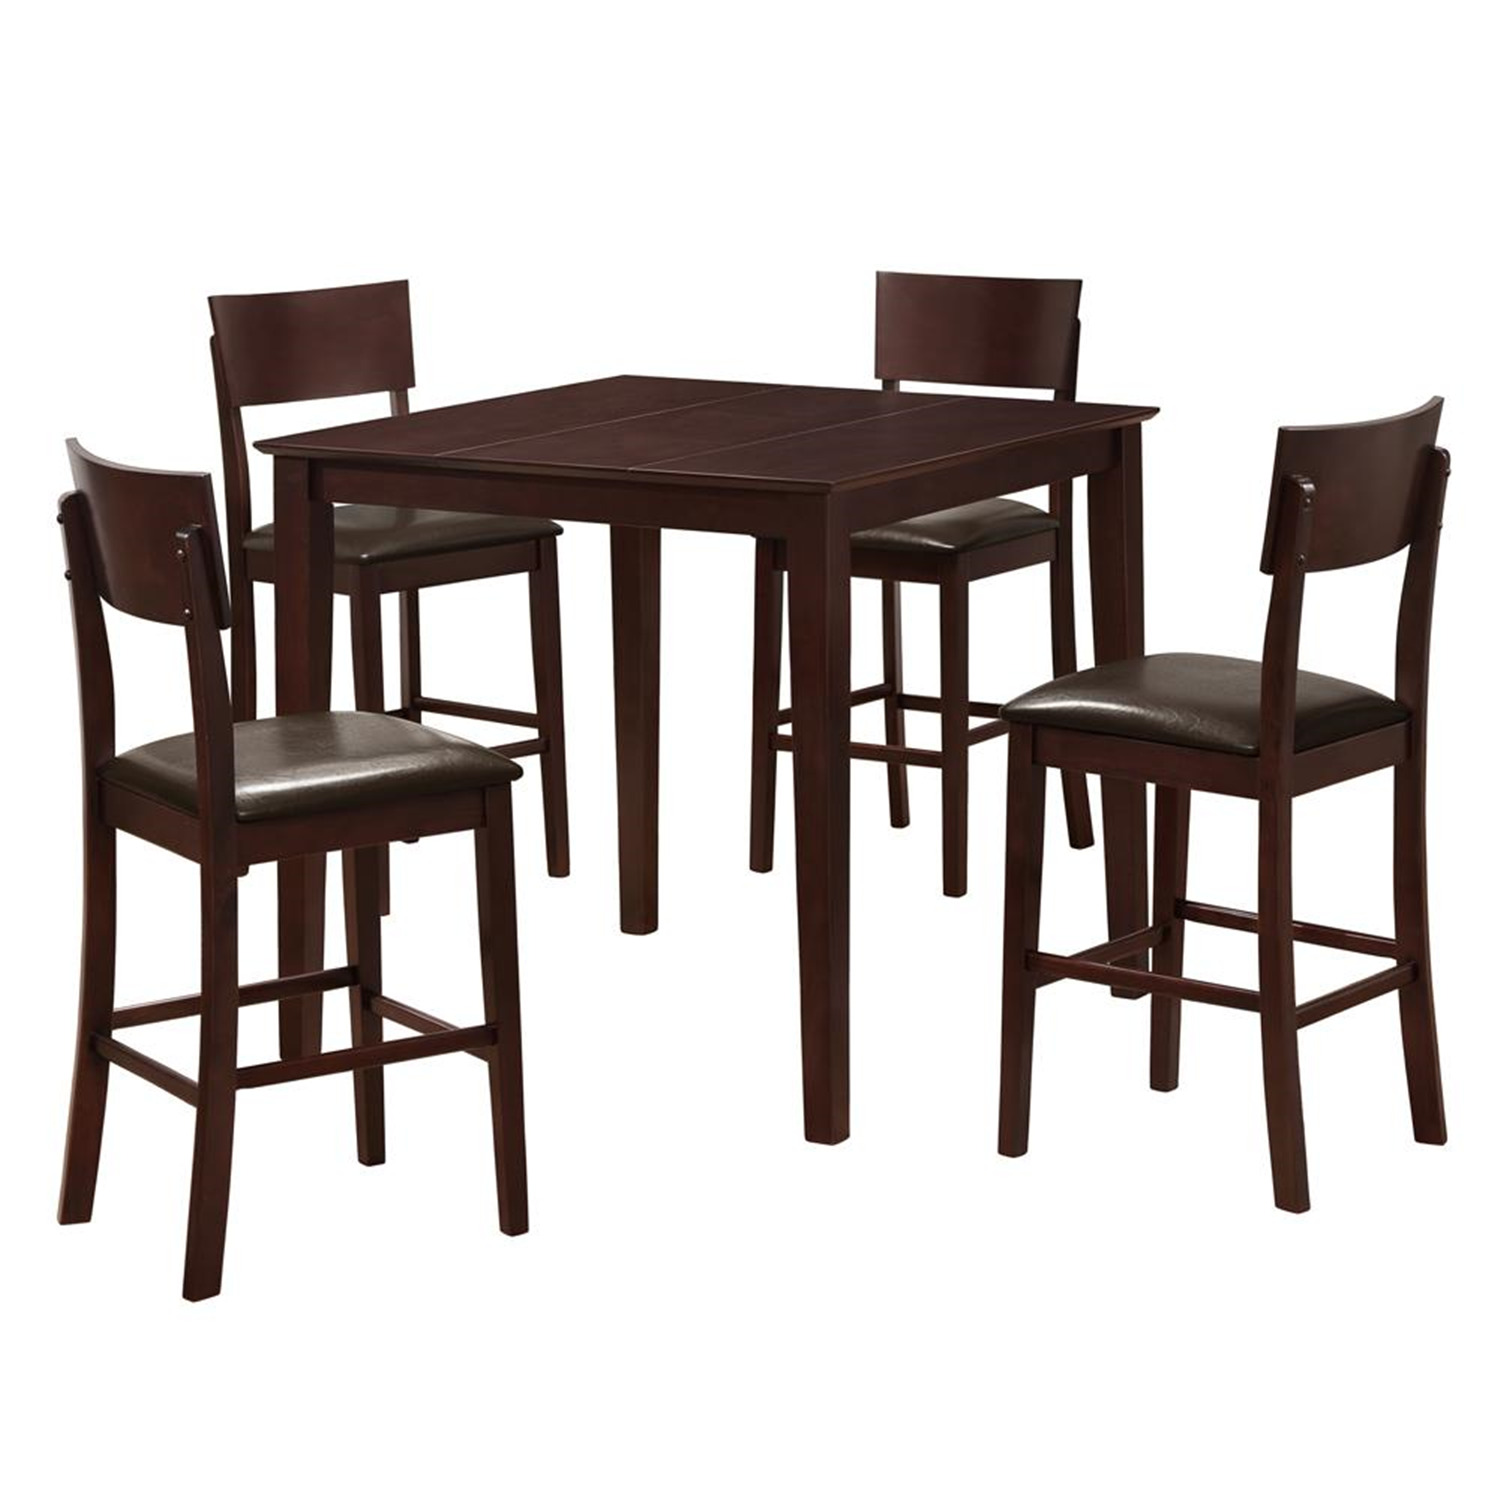 Walker edison stanley piece wood pub table set dark